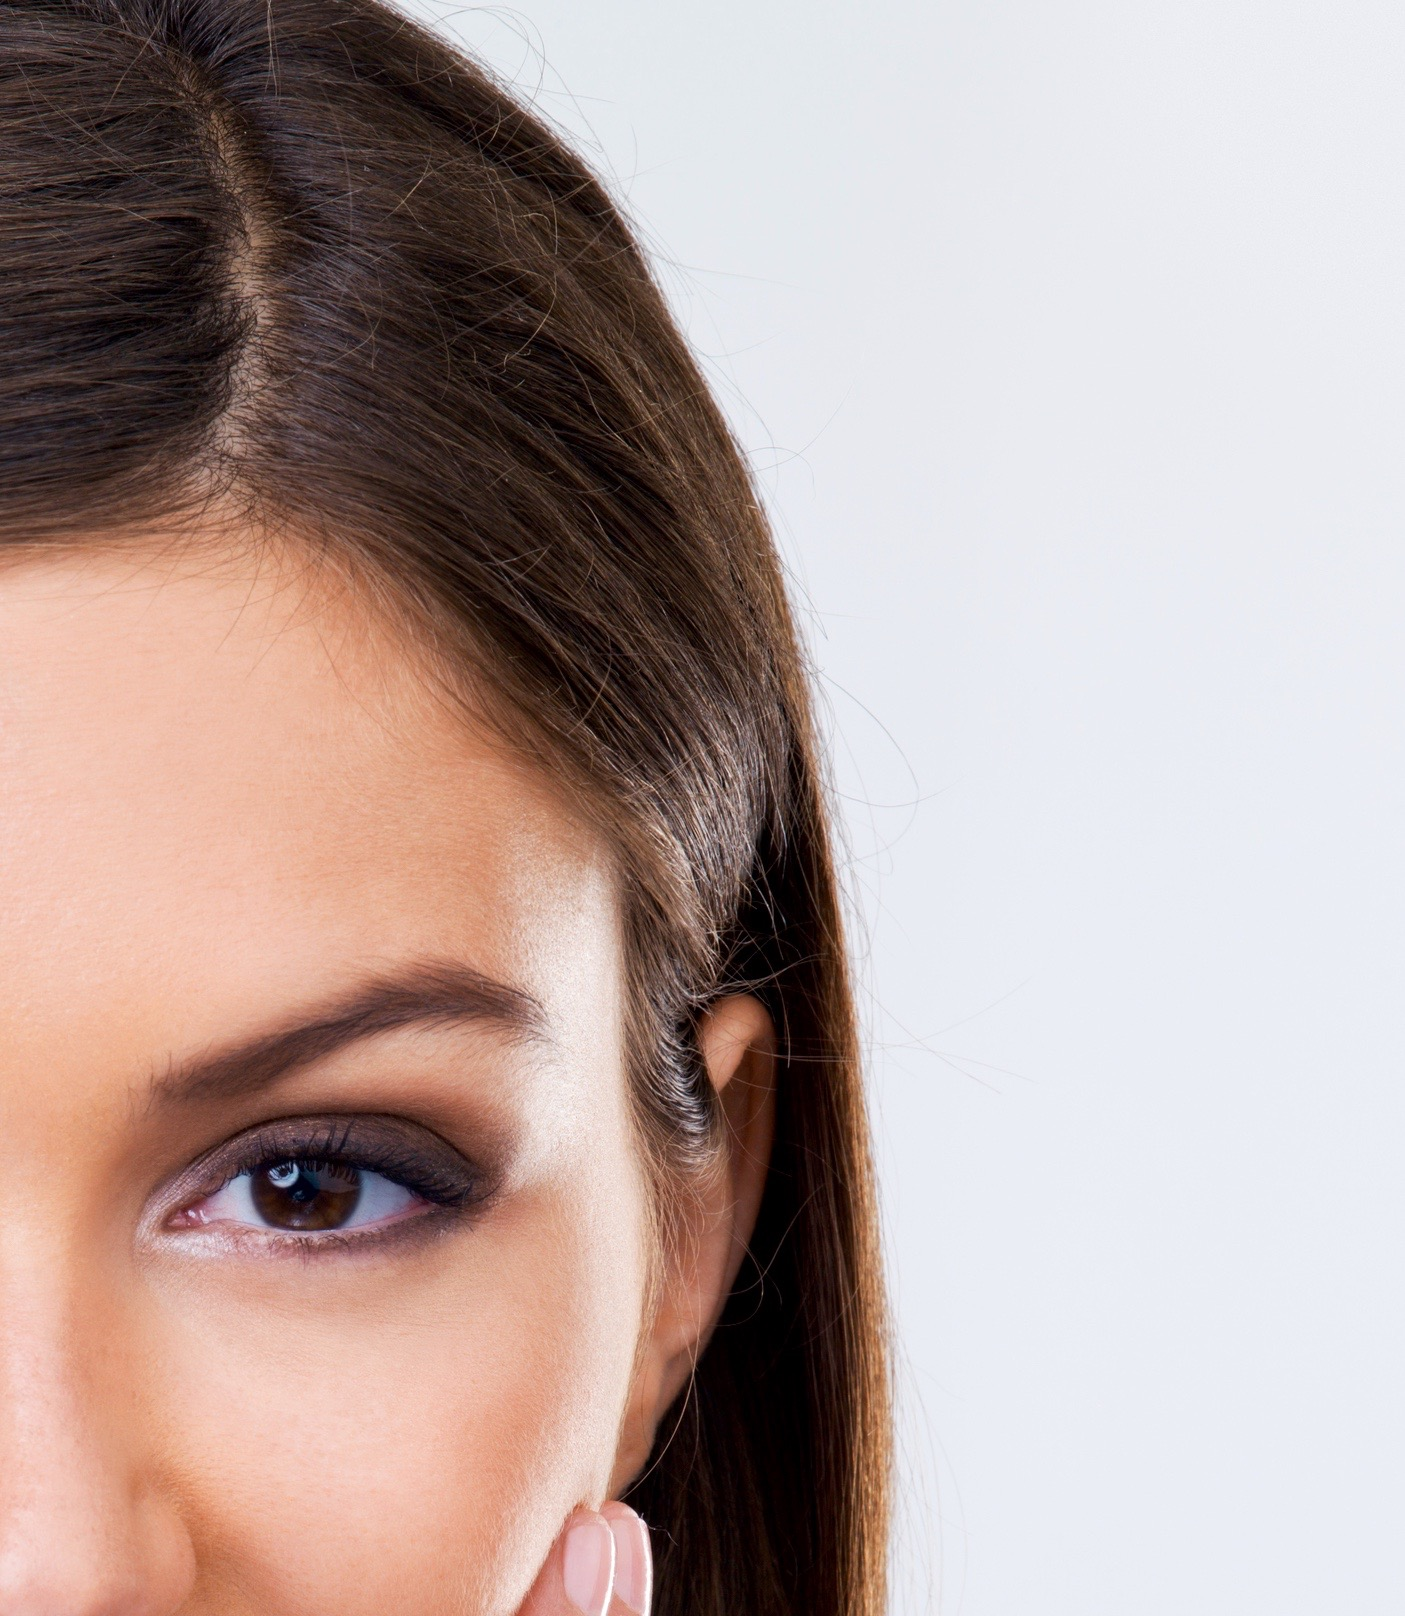 How Does BOTOX® Smooth Facial Wrinkles and More?